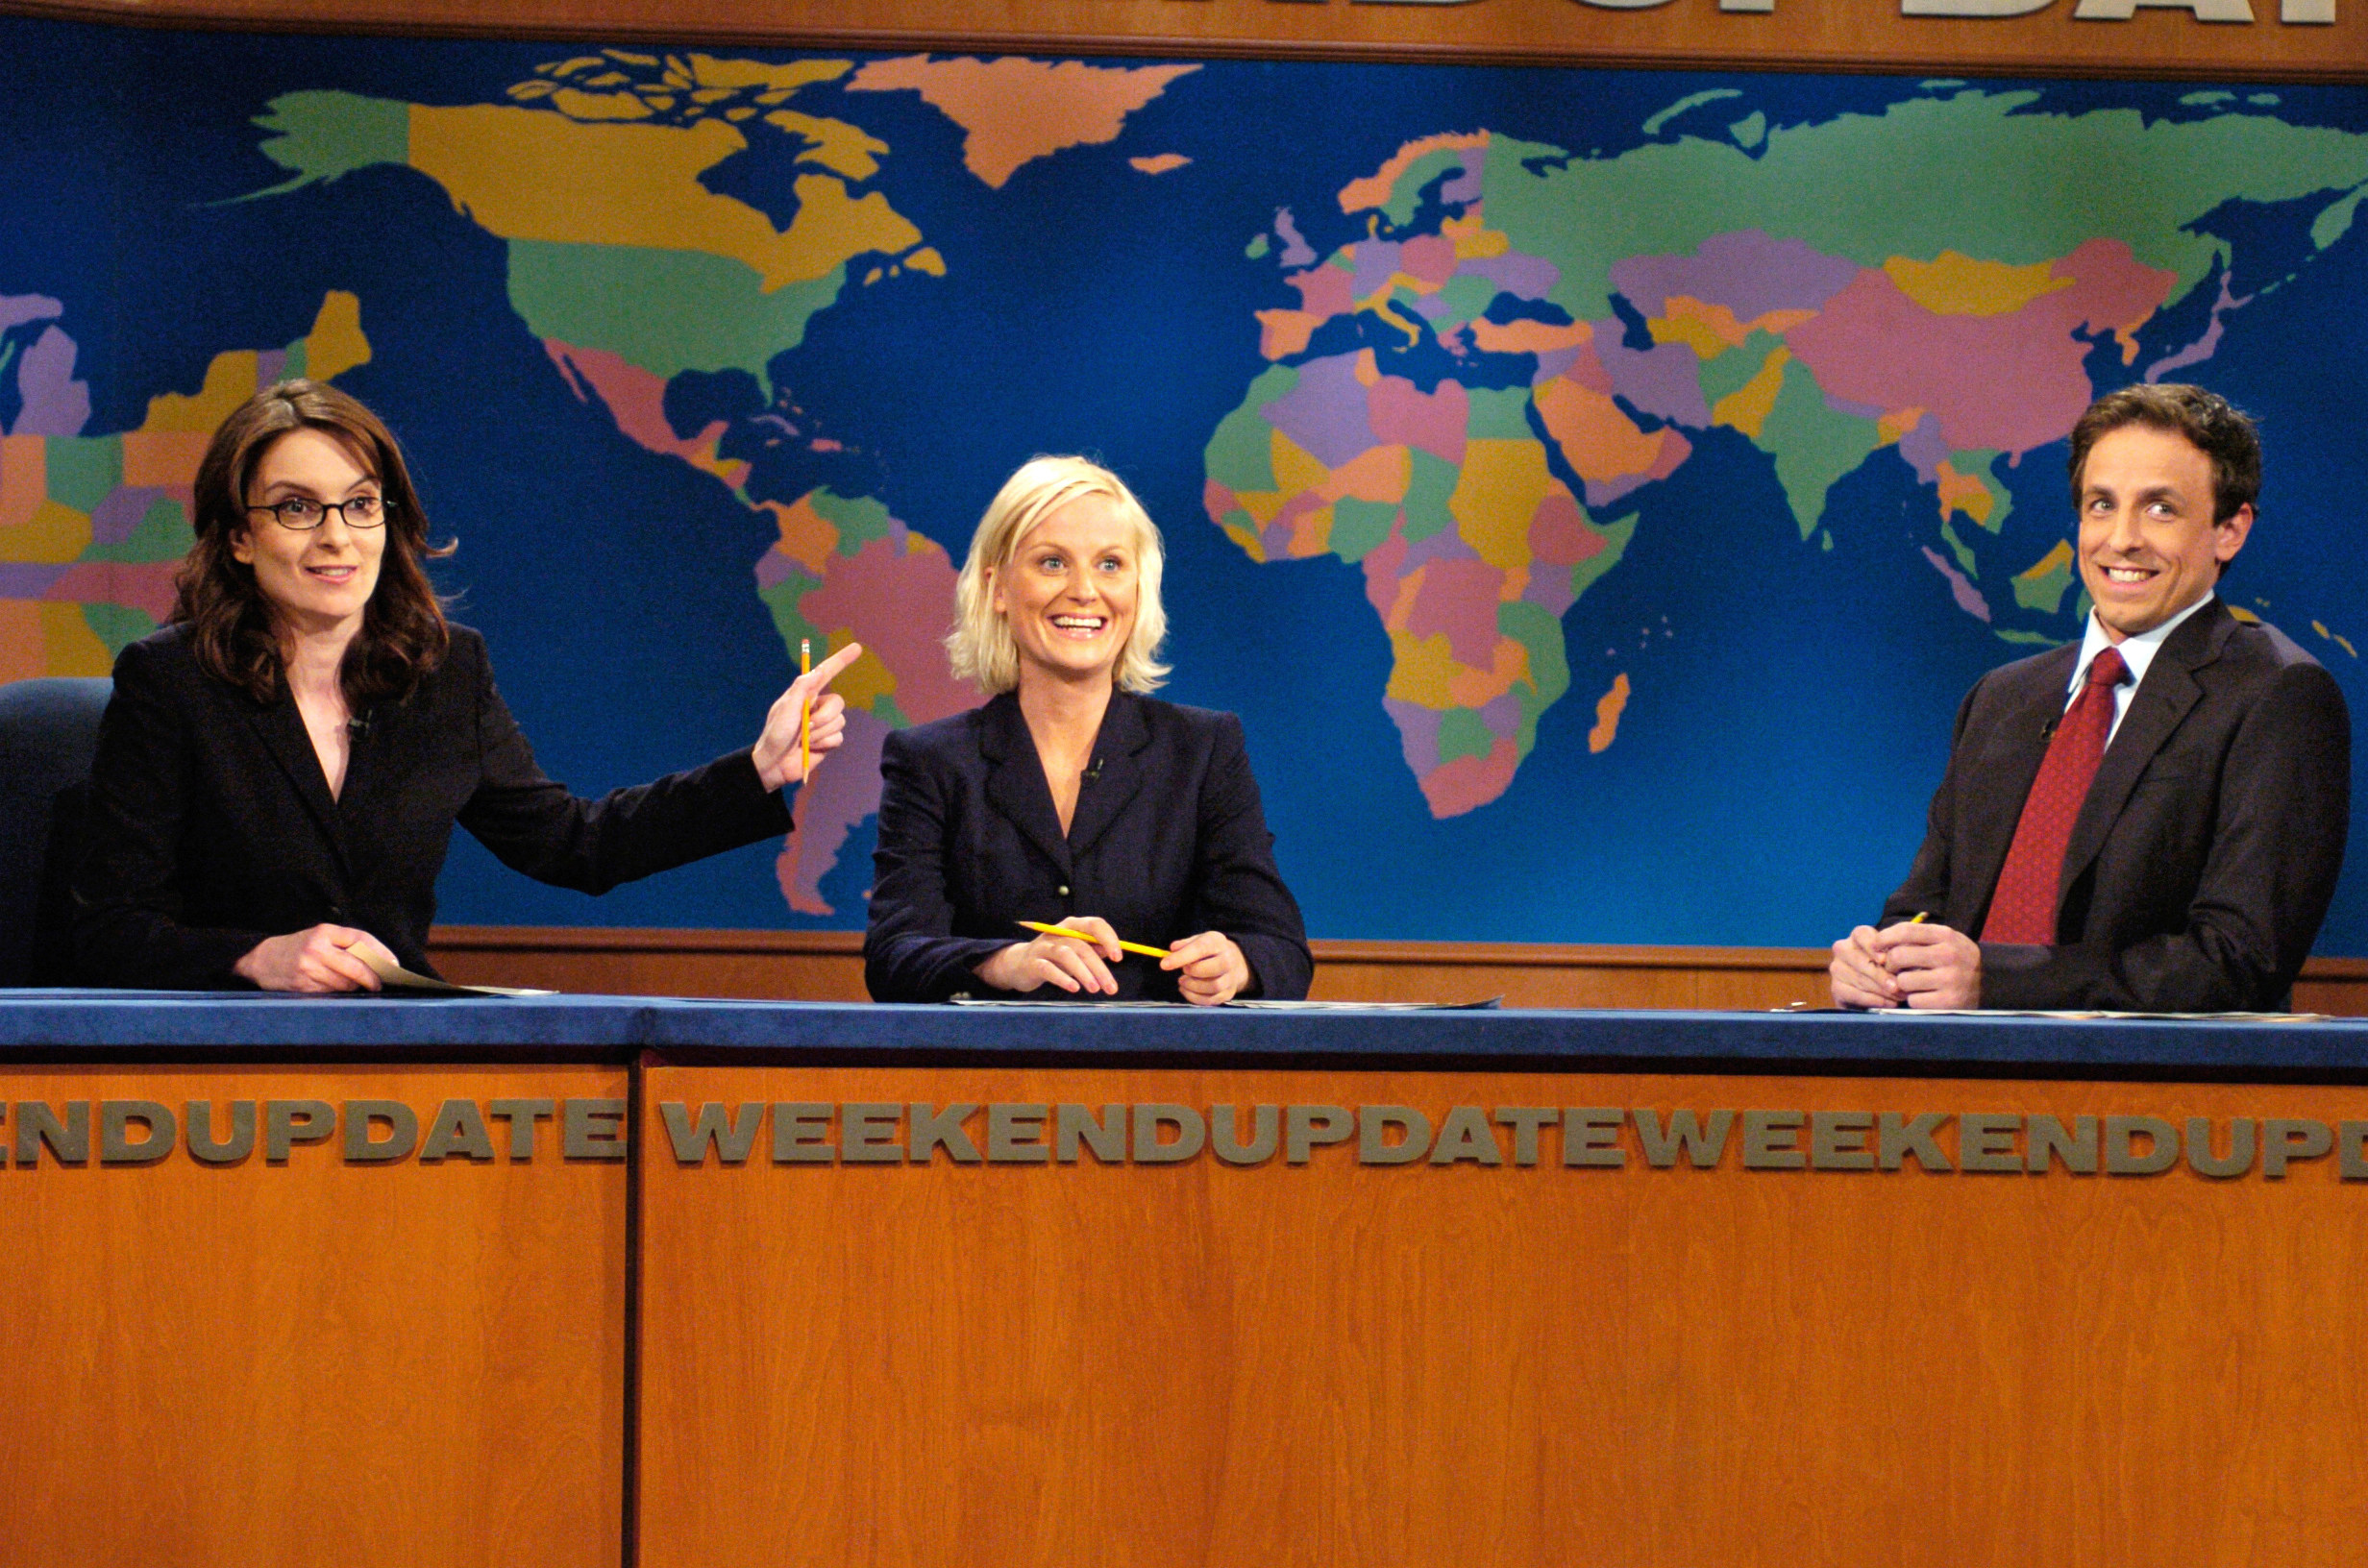 """Tina Fey, Amy Poehler, and Seth Meyers sit at the """"Weekend Update"""" desk"""